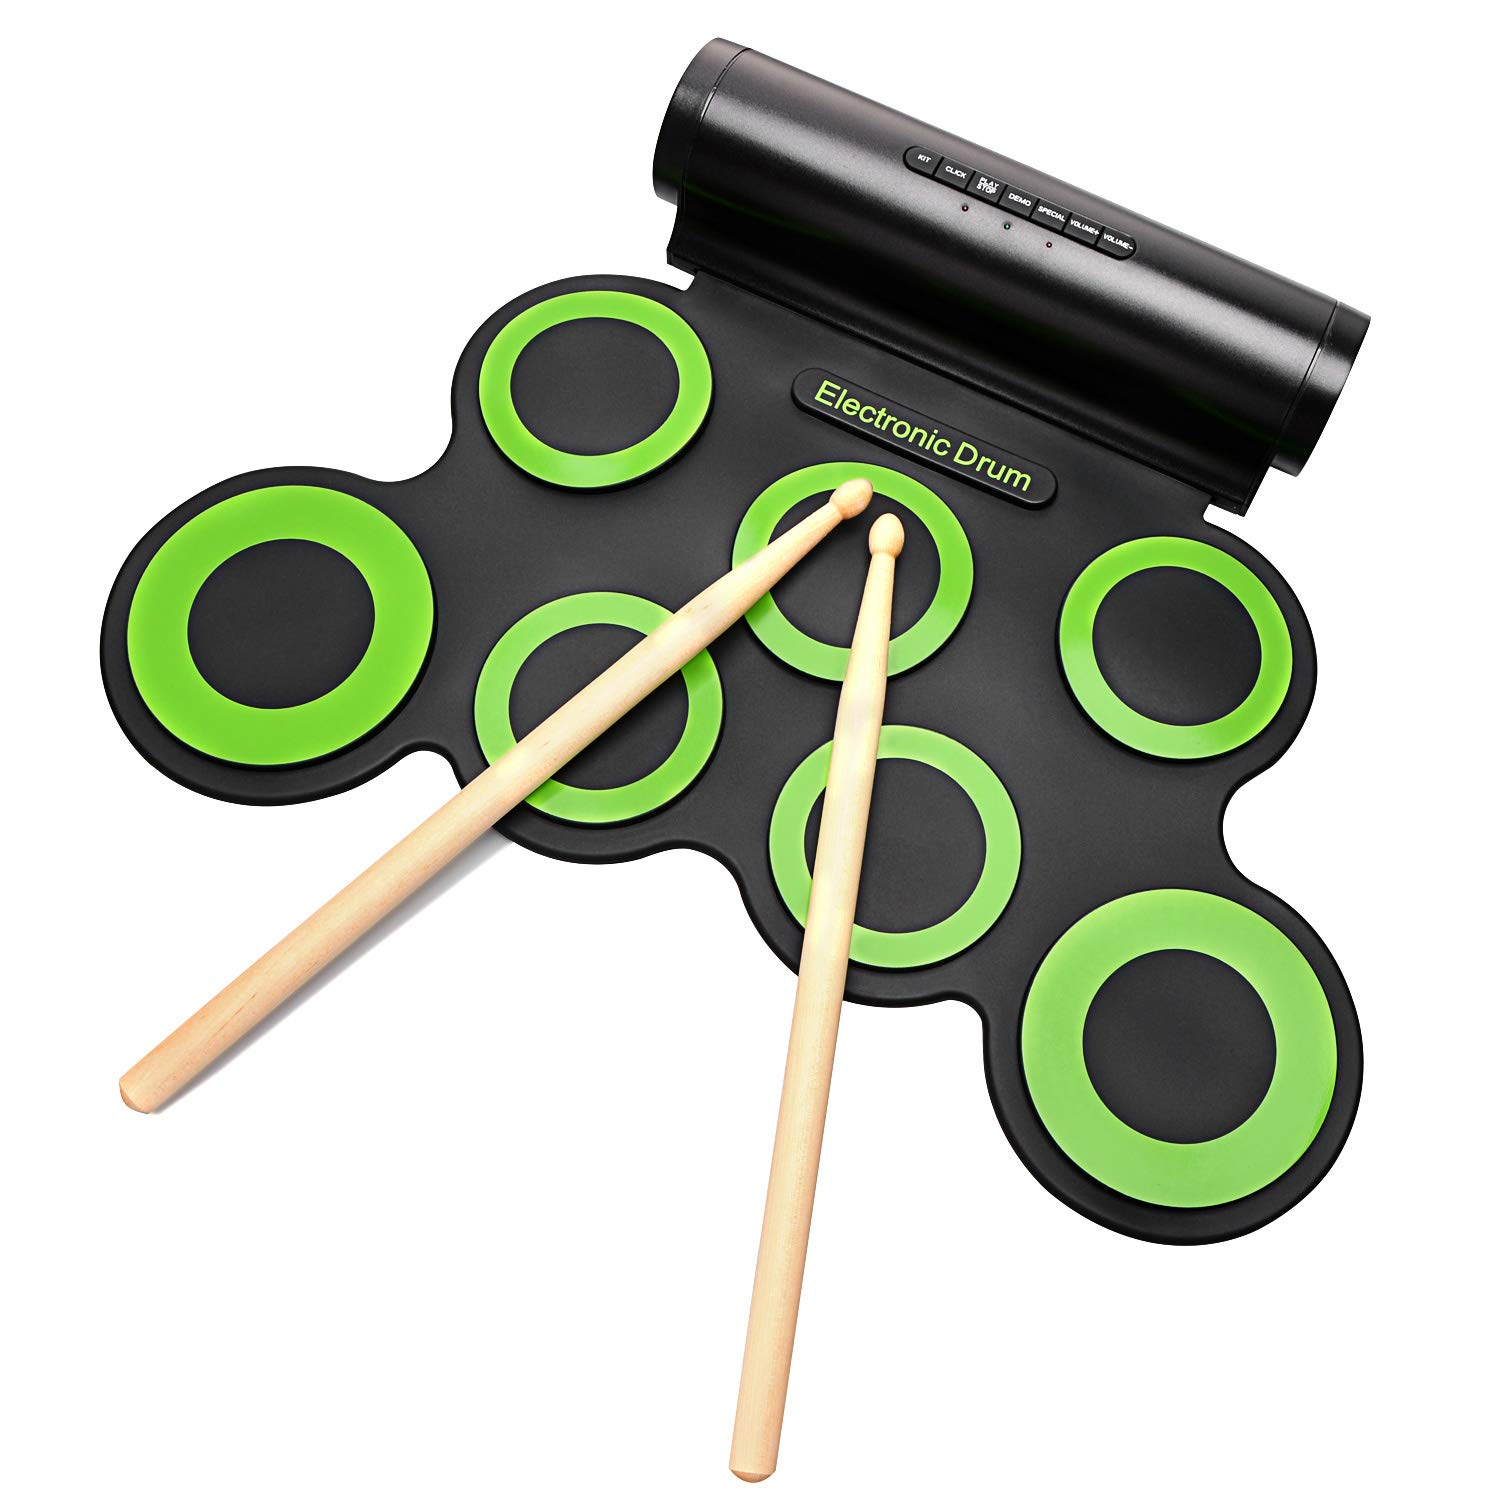 Electronic Drum Set Portable Electronic Drum Pad - Built-In Speaker (DC Powered) - Digital Roll-Up Touch 7 Labeled Pads and 2 Foot Pedals Midi Drum Up to 10H Playing Time Holiday for Kids Children Beginners